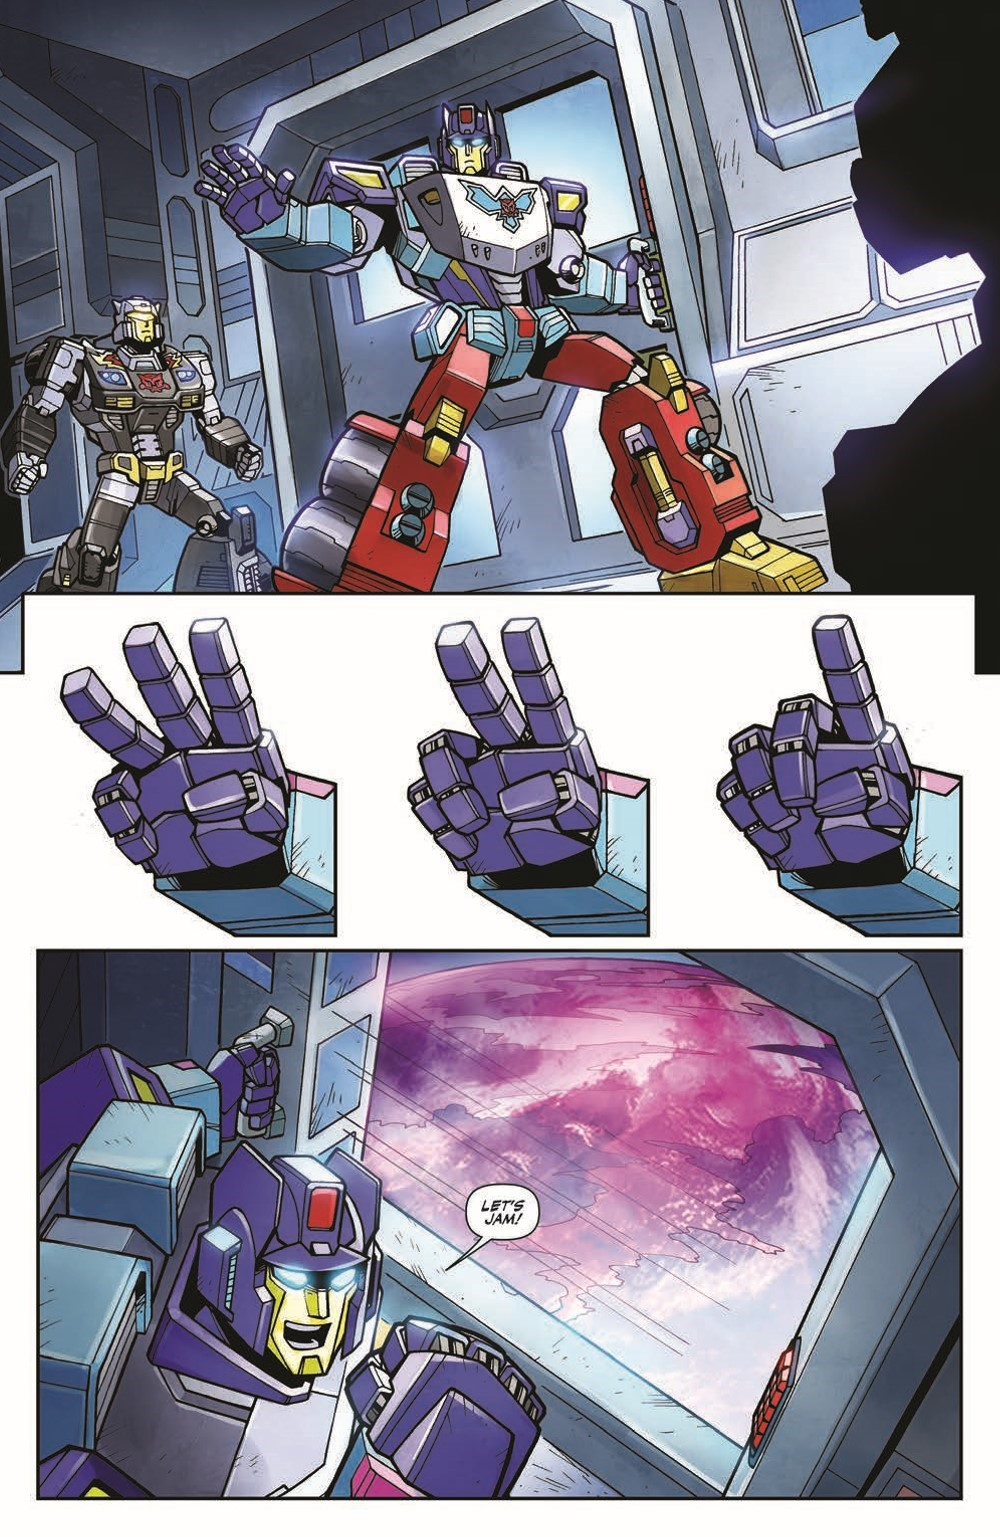 TFWreckers01-pr-3 ComicList Previews: TRANSFORMERS WRECKERS TREAD AND CIRCUITS #1 (OF 4)